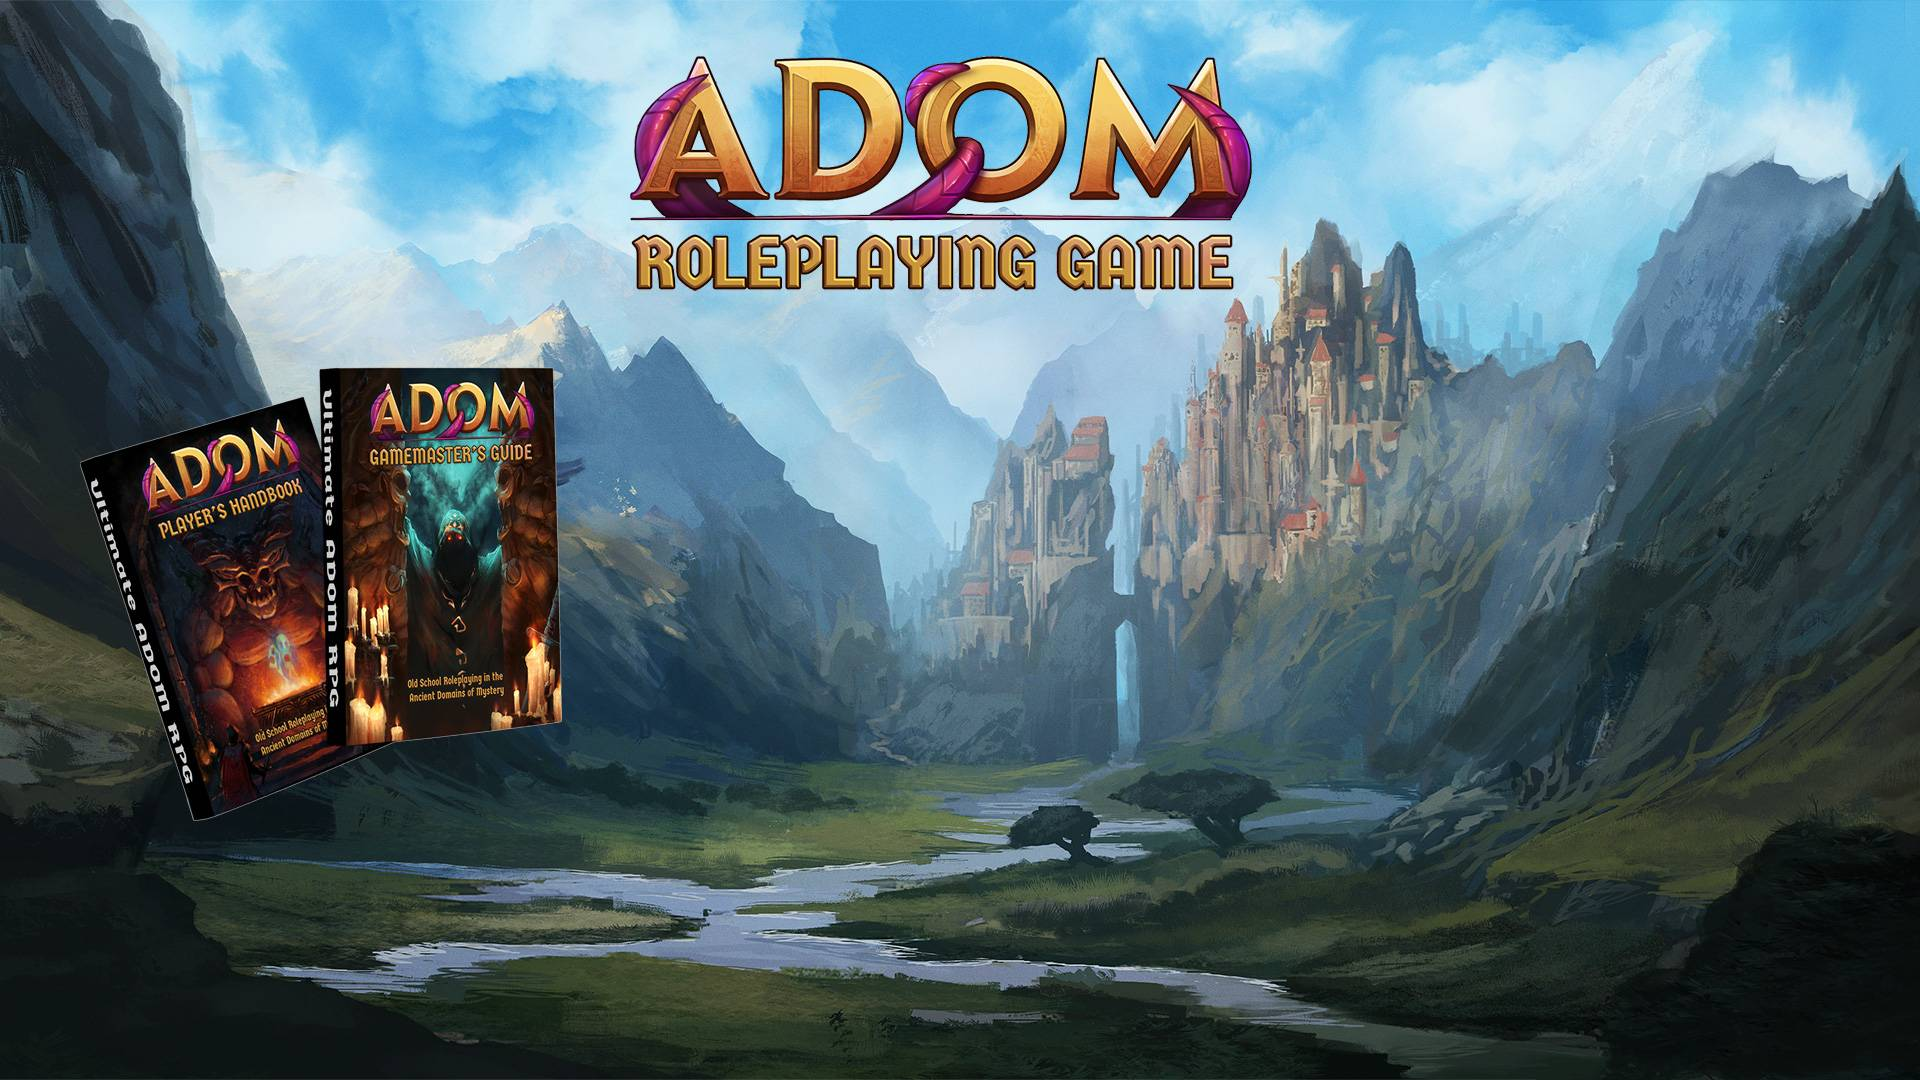 ADOM Roleplaying Game – A Modern Fantasy Roleplaying Game